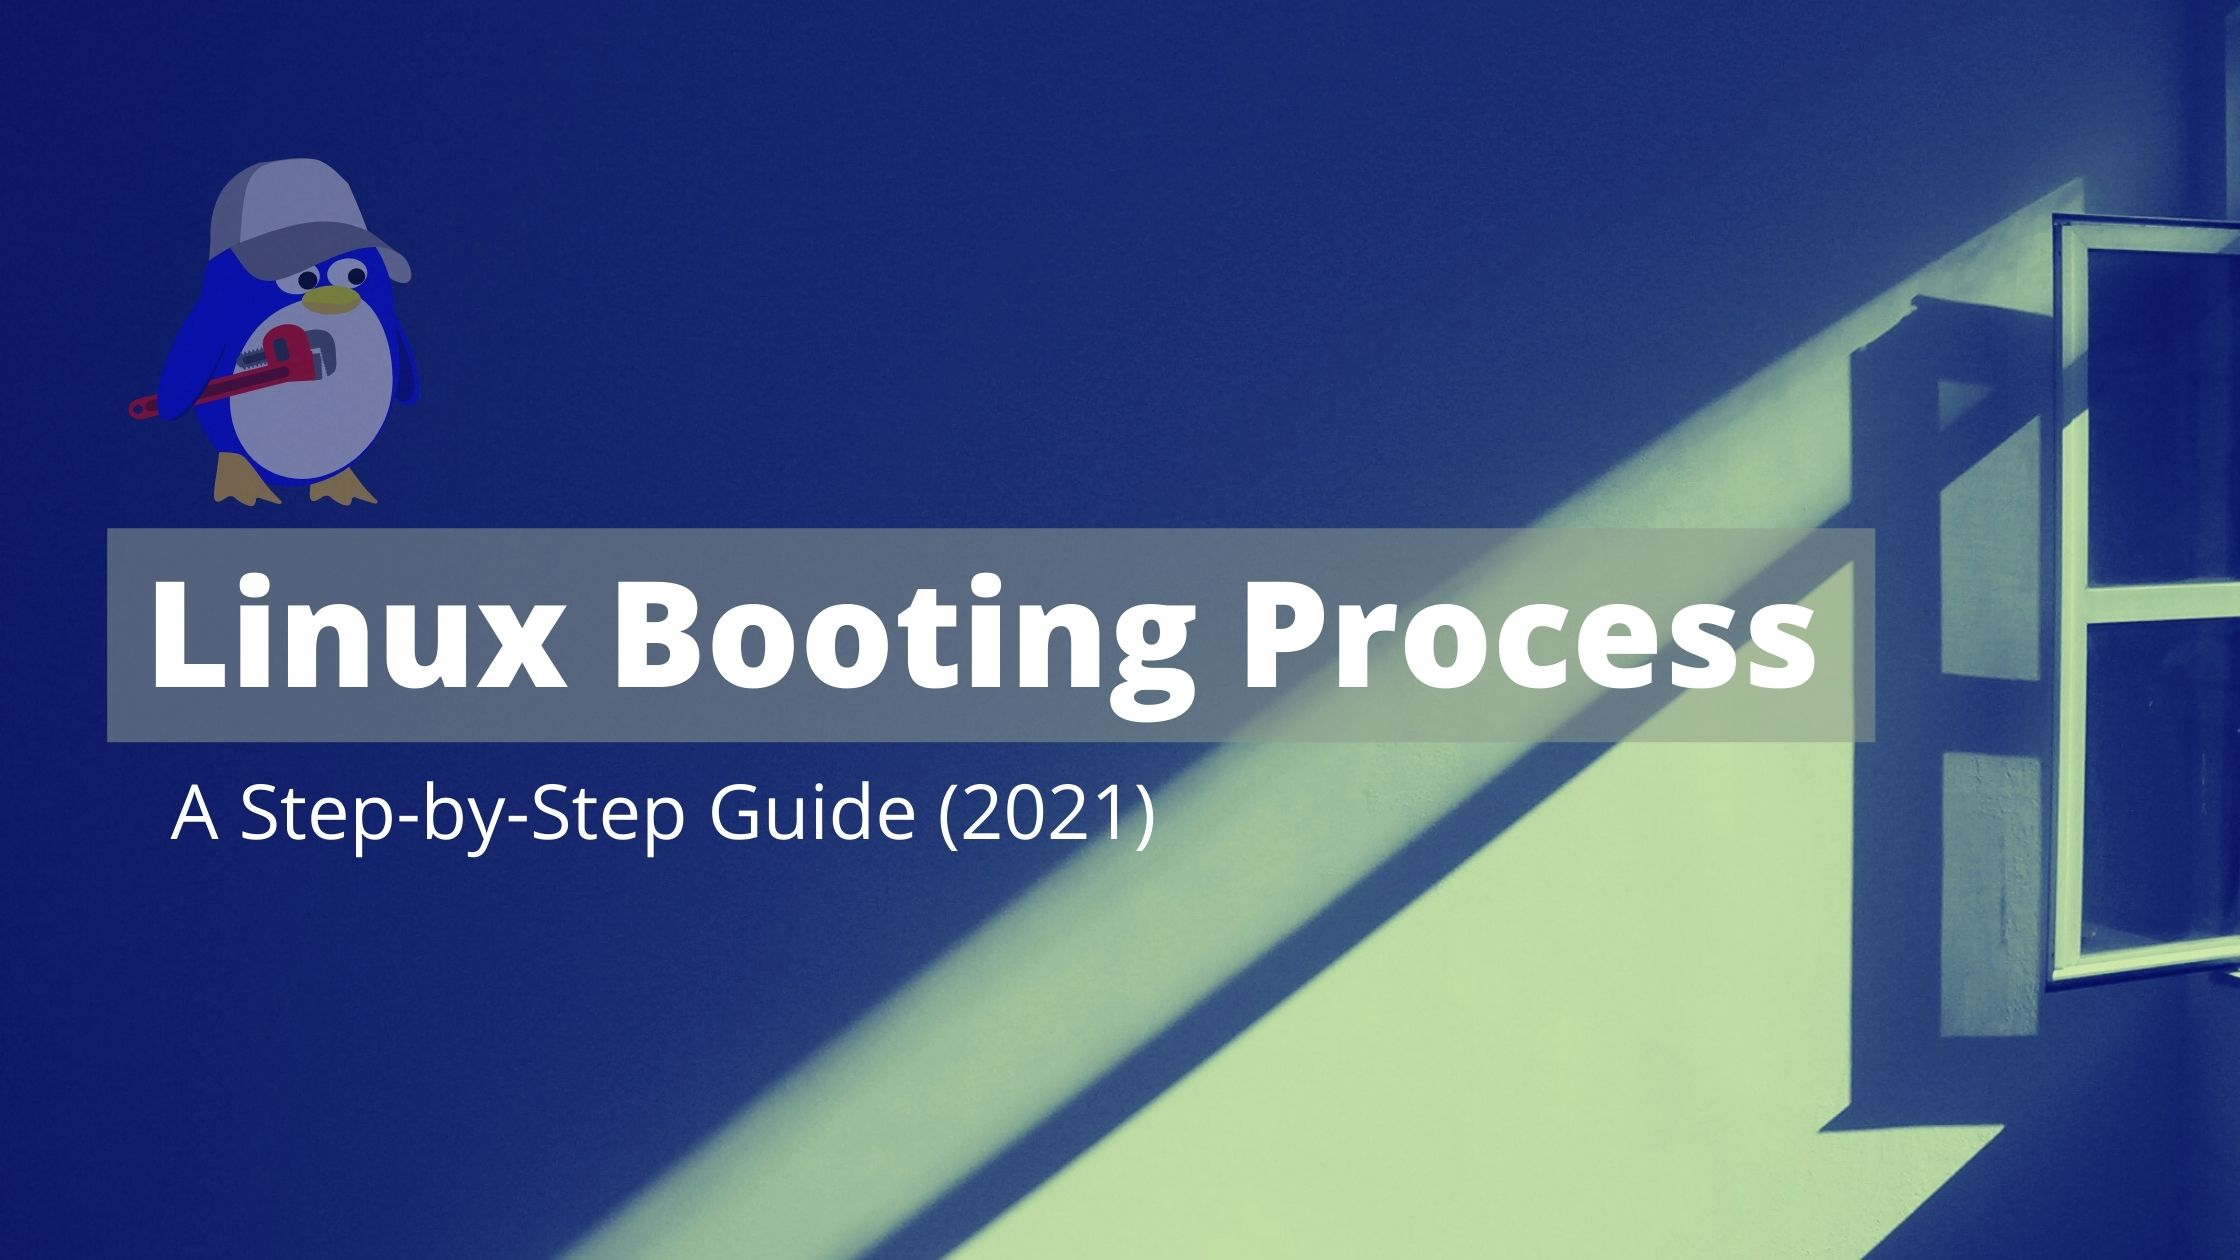 Linux_Booting_Proess_Step_by_step_guide_2021.